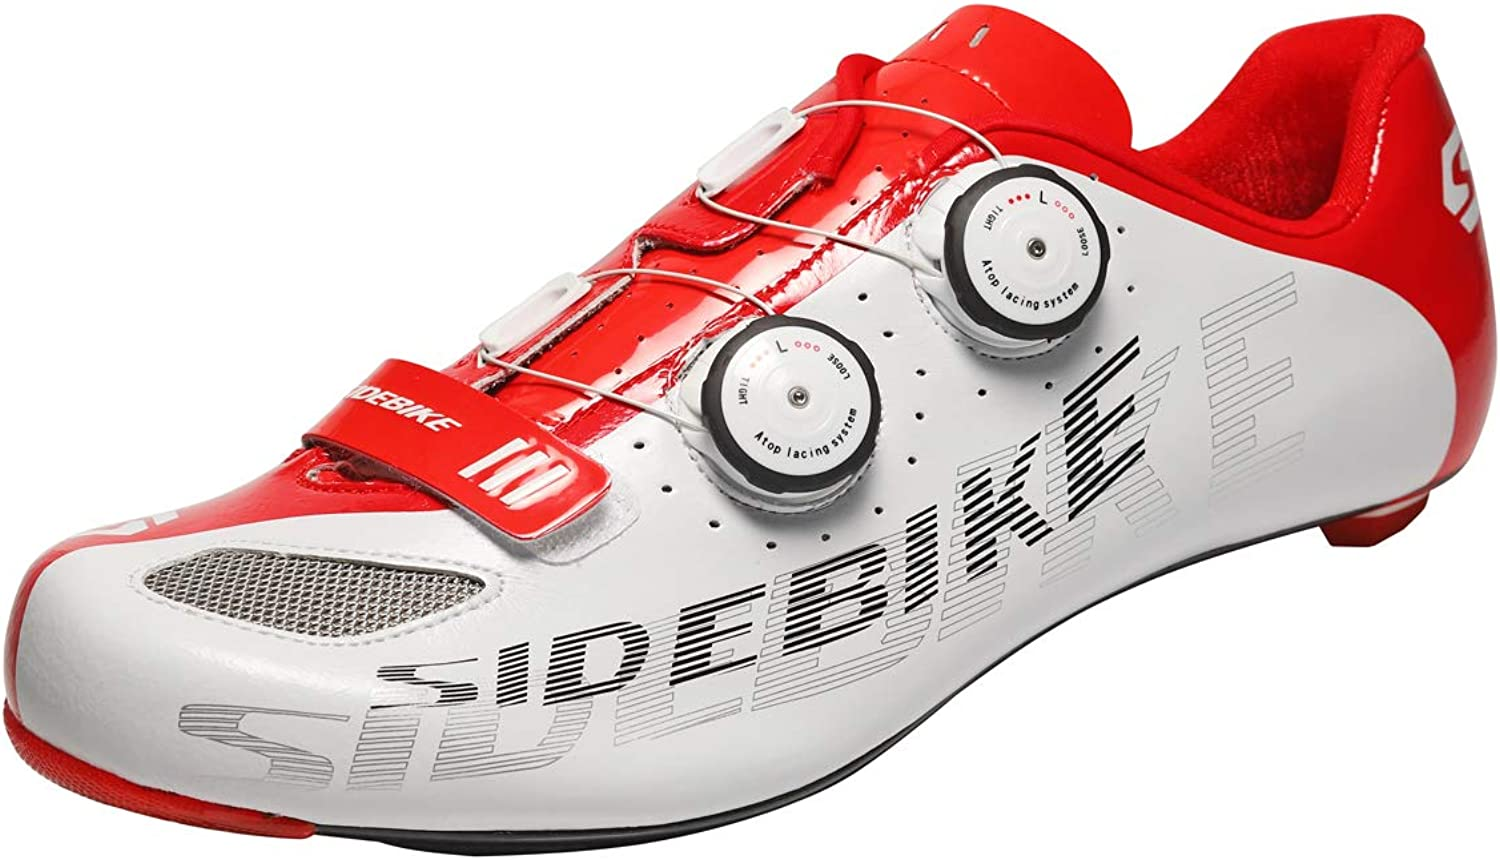 SIDEBIKE Carbon Fiber Cycling shoes for Road Reel Knob Speed Lacing System Breathable 002W